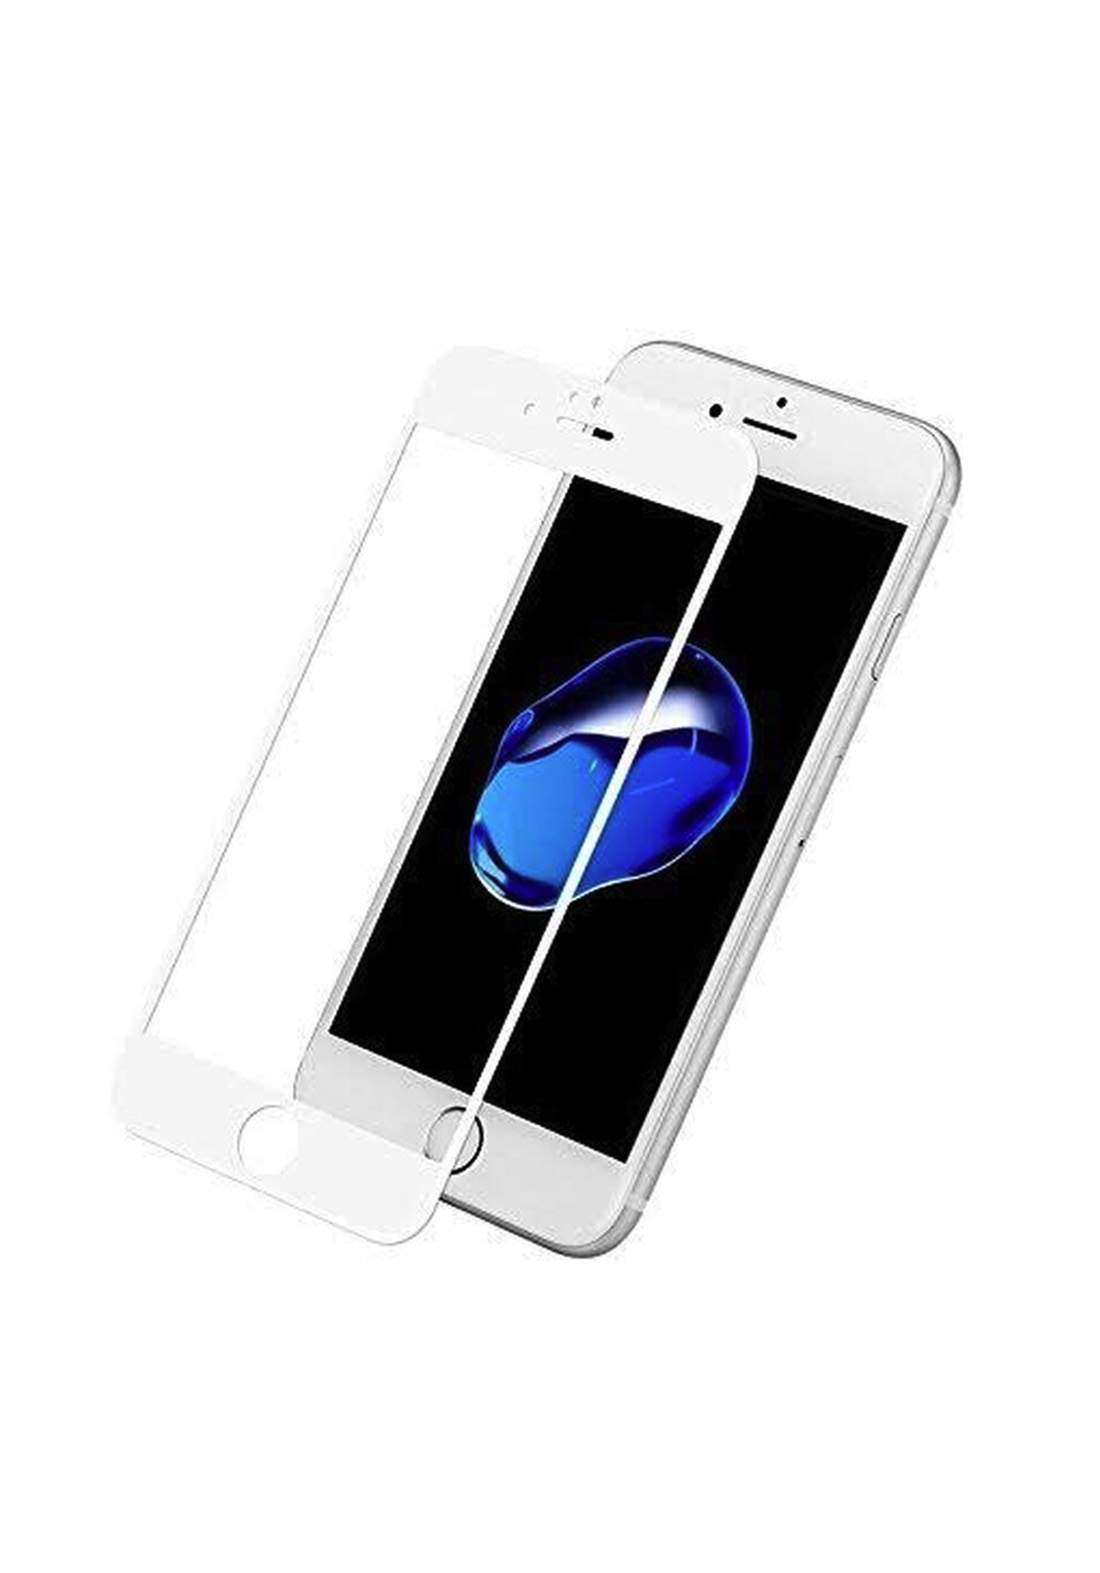 Tempered Glass Screen Protector for iPhone 7G - White واقي شاشة